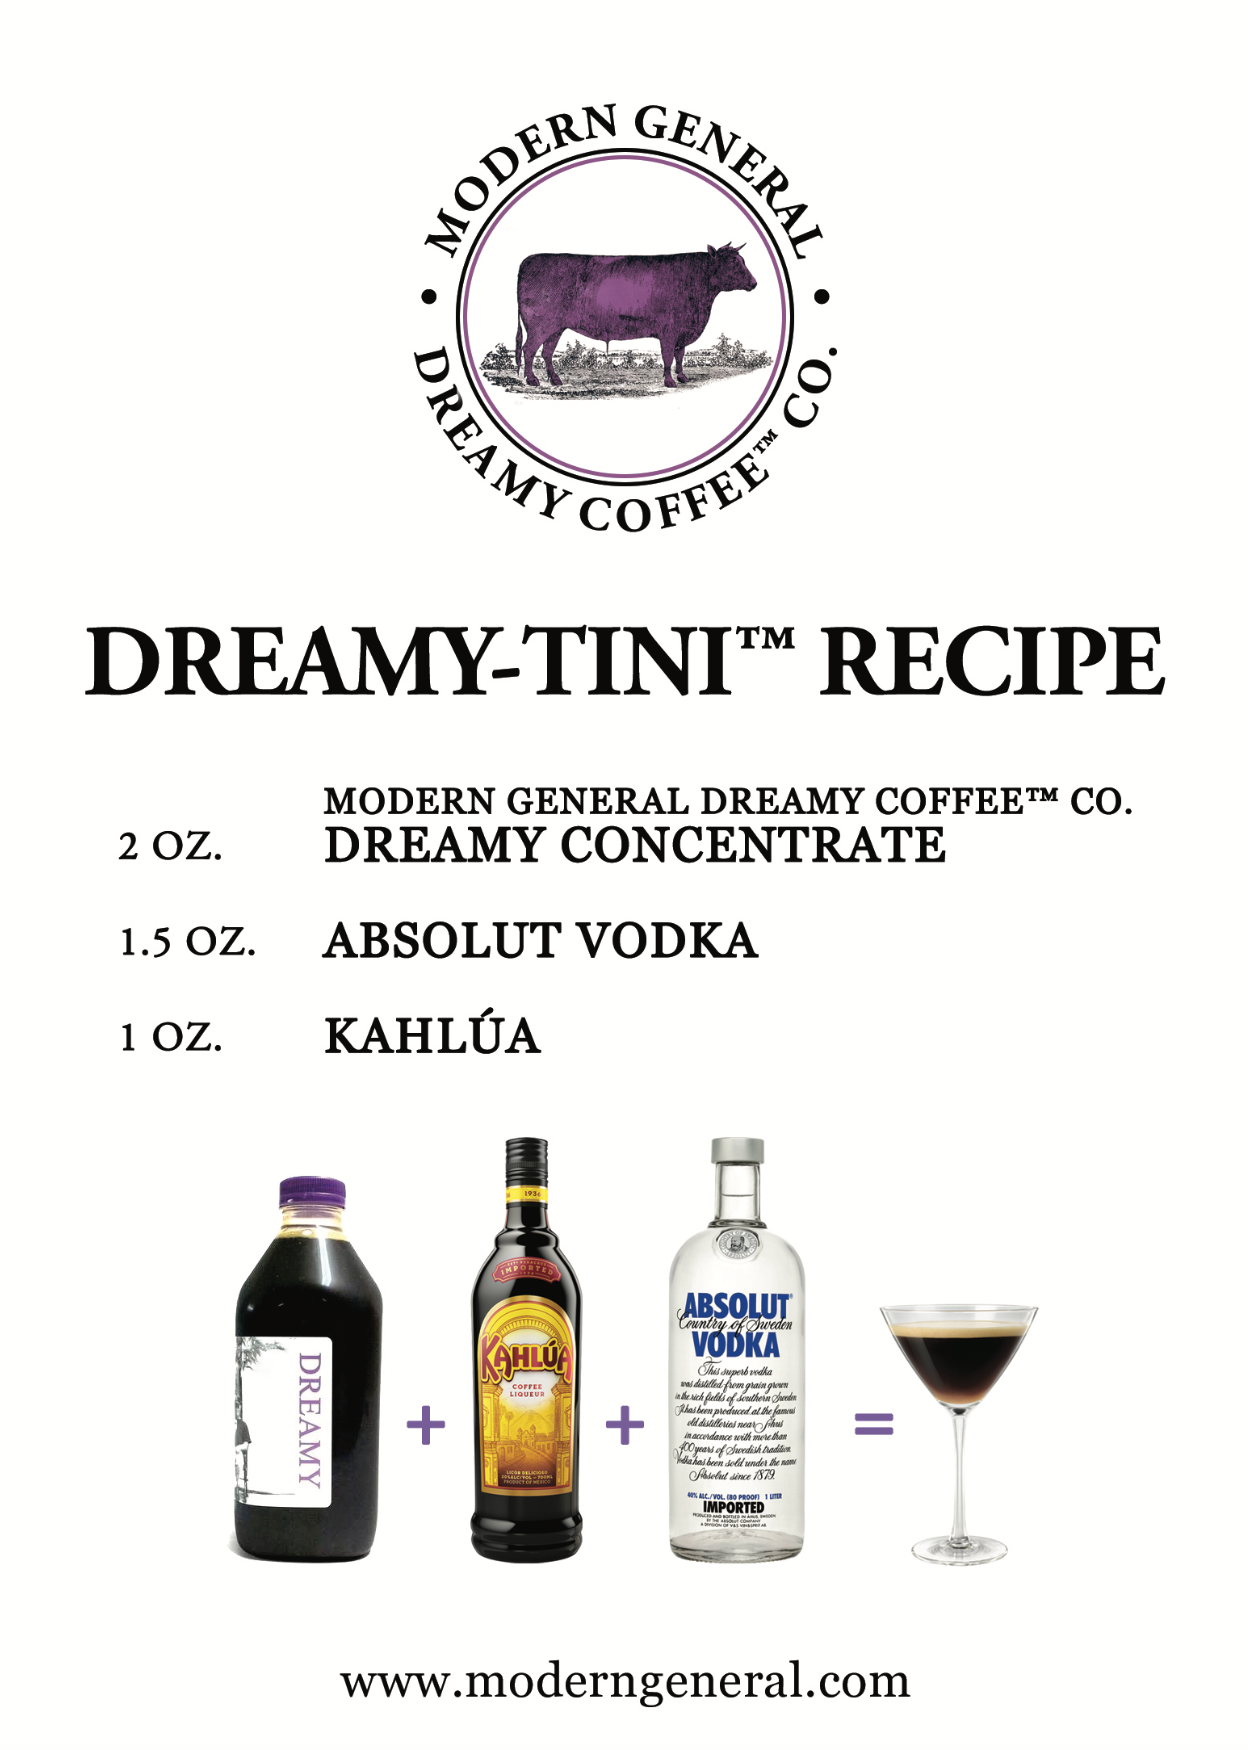 Dreamy-tini™ Recipe | Coffee Concentrate Cocktails | The Hamptons